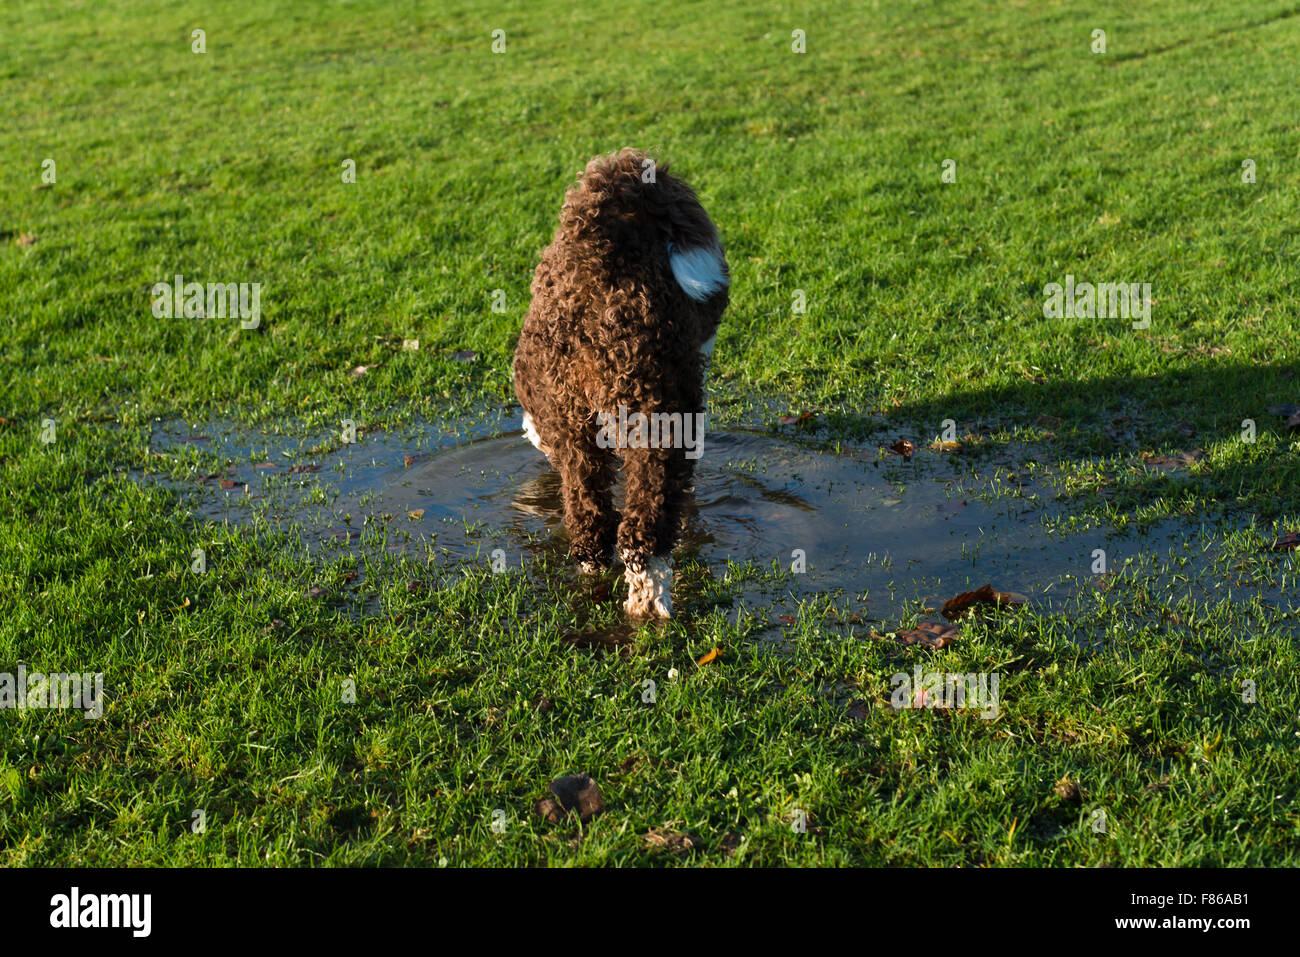 Spanish water dog playing in water puddle Stock Photo